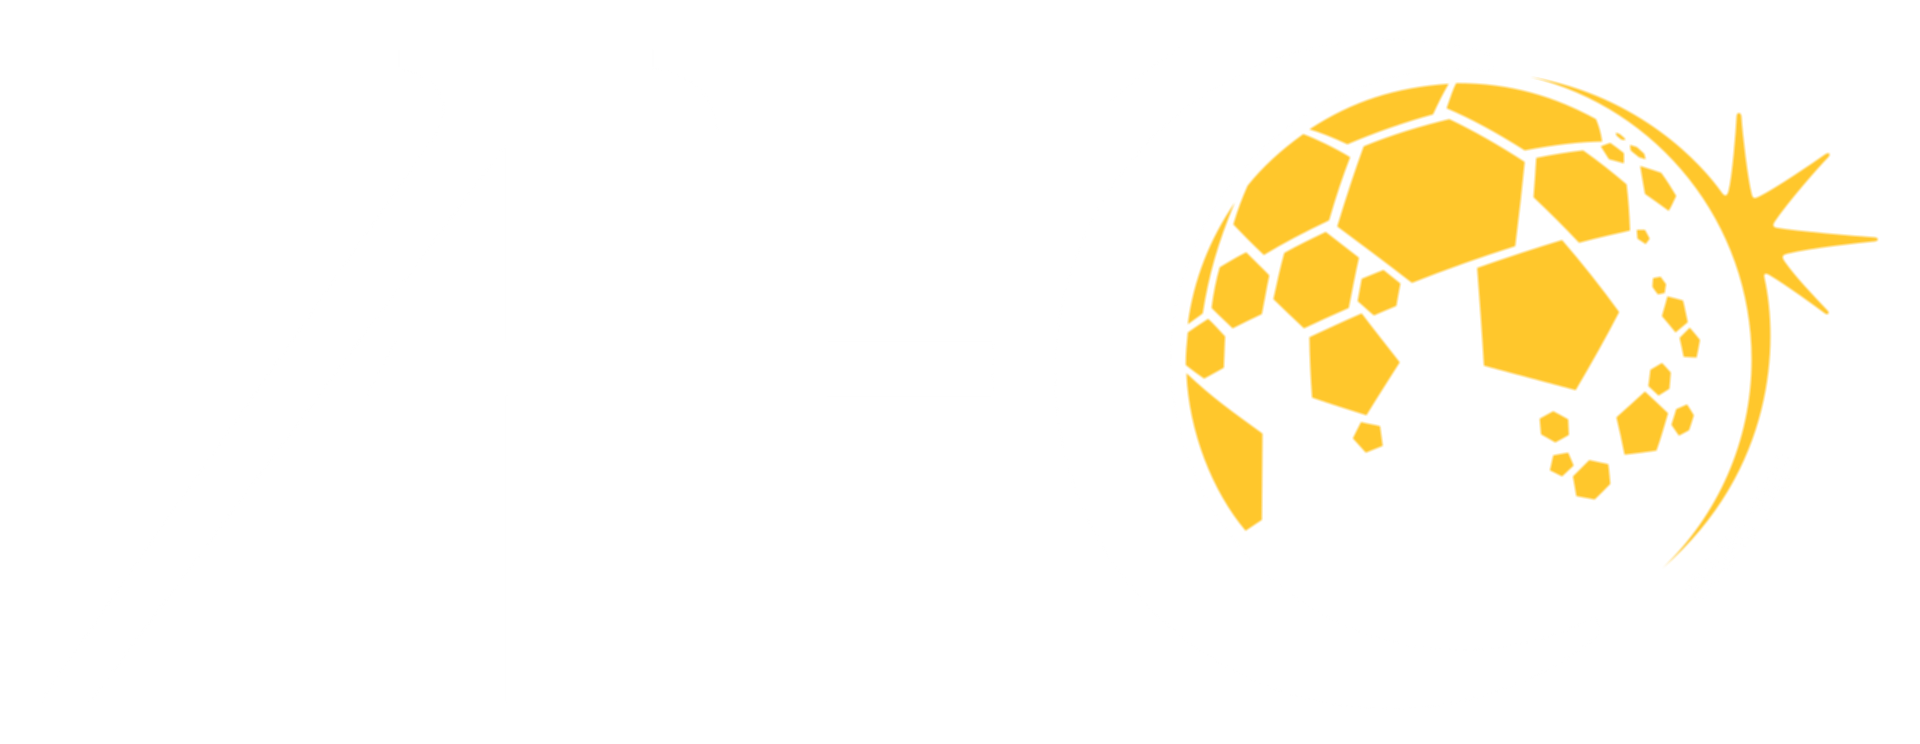 파일:Asian Football Confederation logo white.png